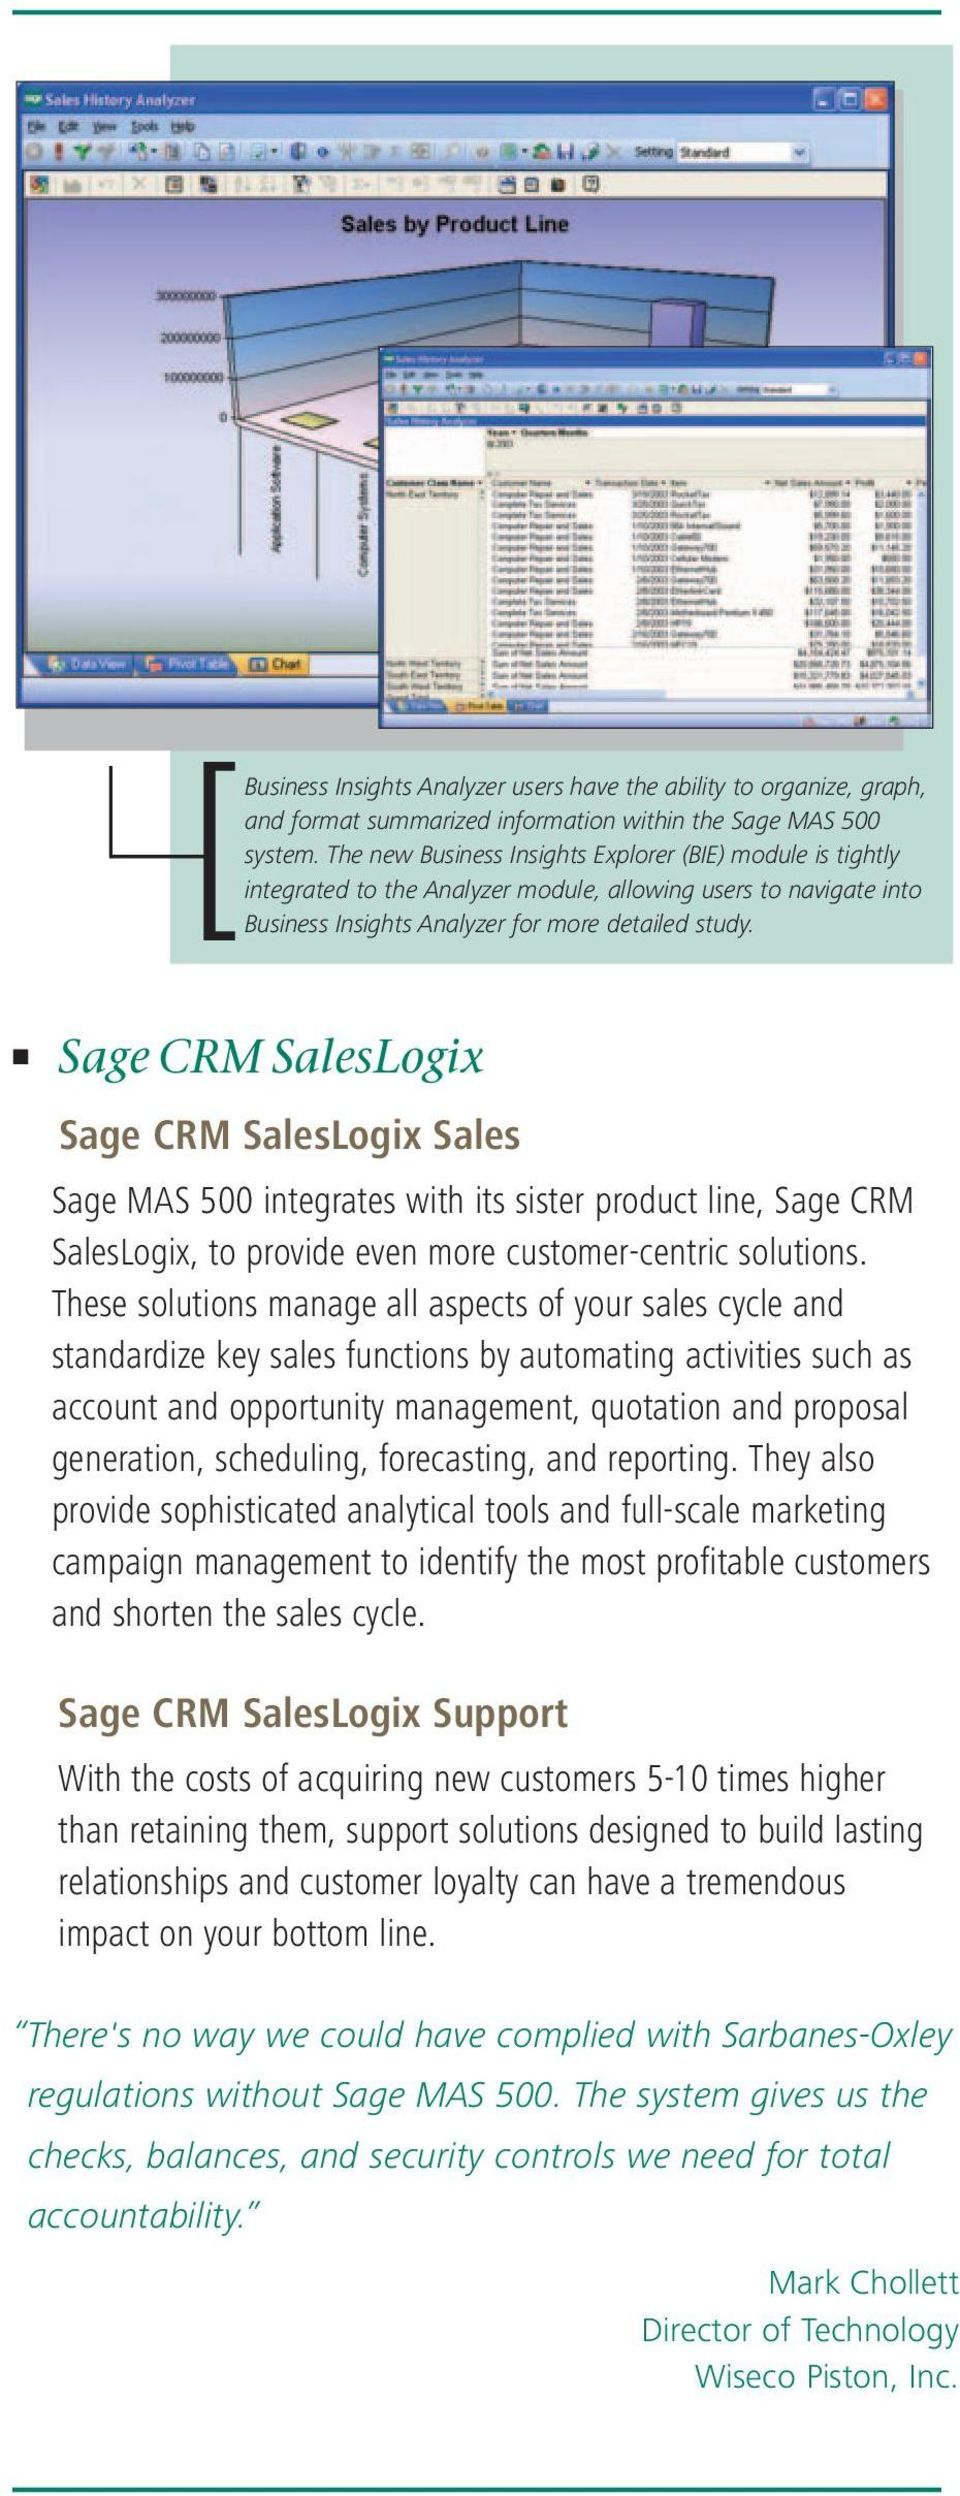 Sage CRM SalesLogix Sage CRM SalesLogix Sales Sage MAS 500 integrates with its sister product line, Sage CRM SalesLogix, to provide even more customer-centric solutions.